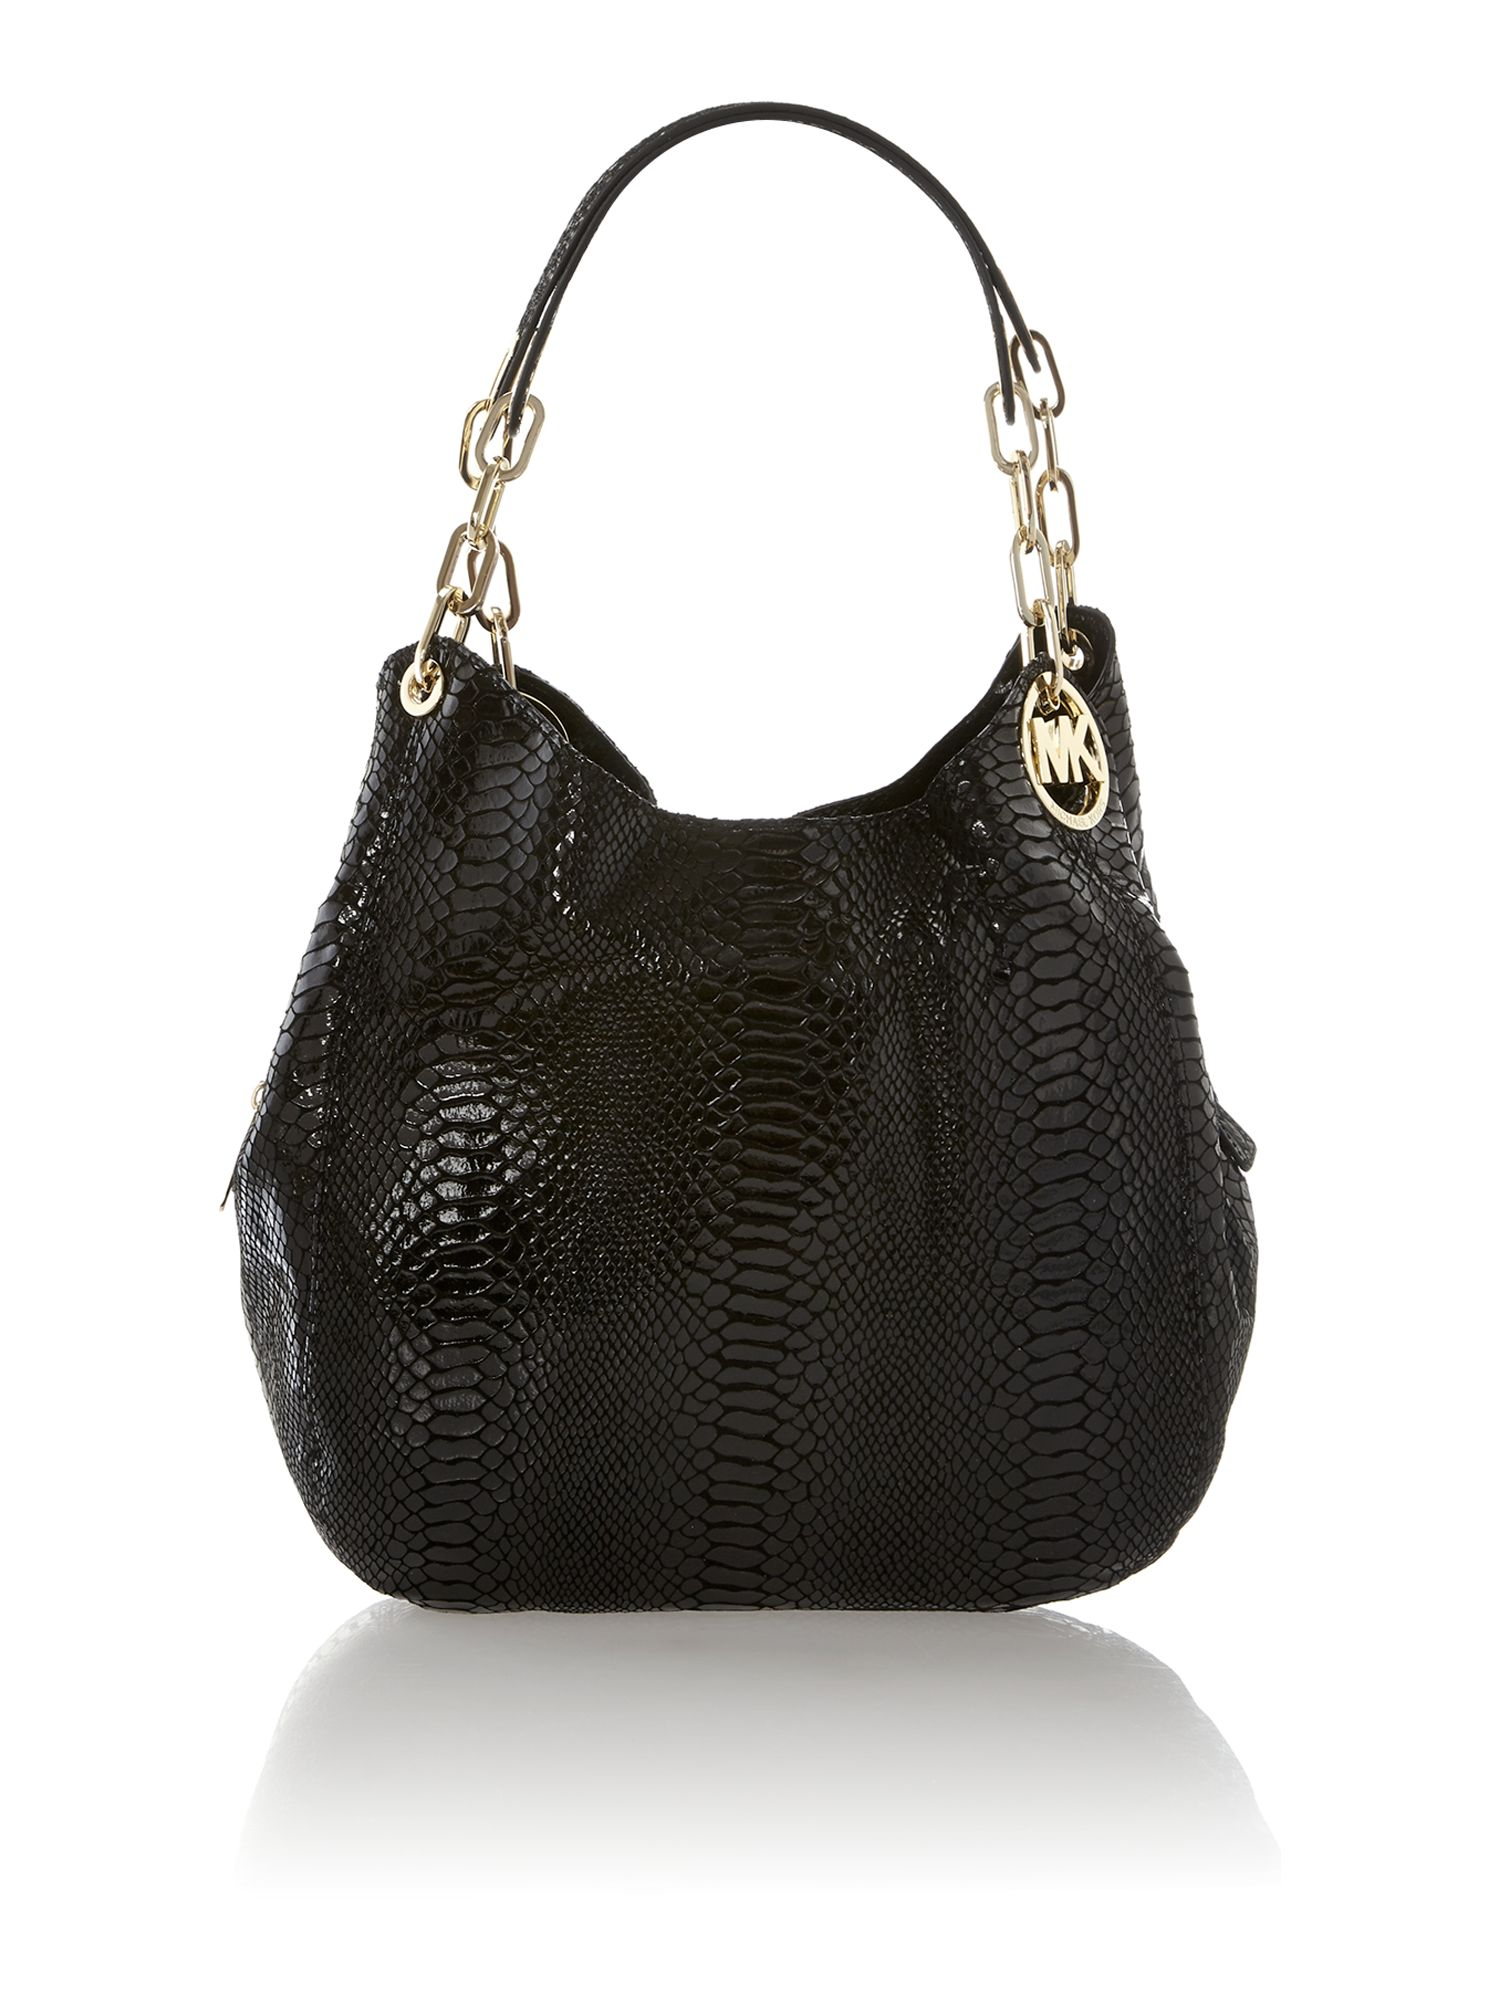 michael kors fulton black python hobo bag in black lyst. Black Bedroom Furniture Sets. Home Design Ideas